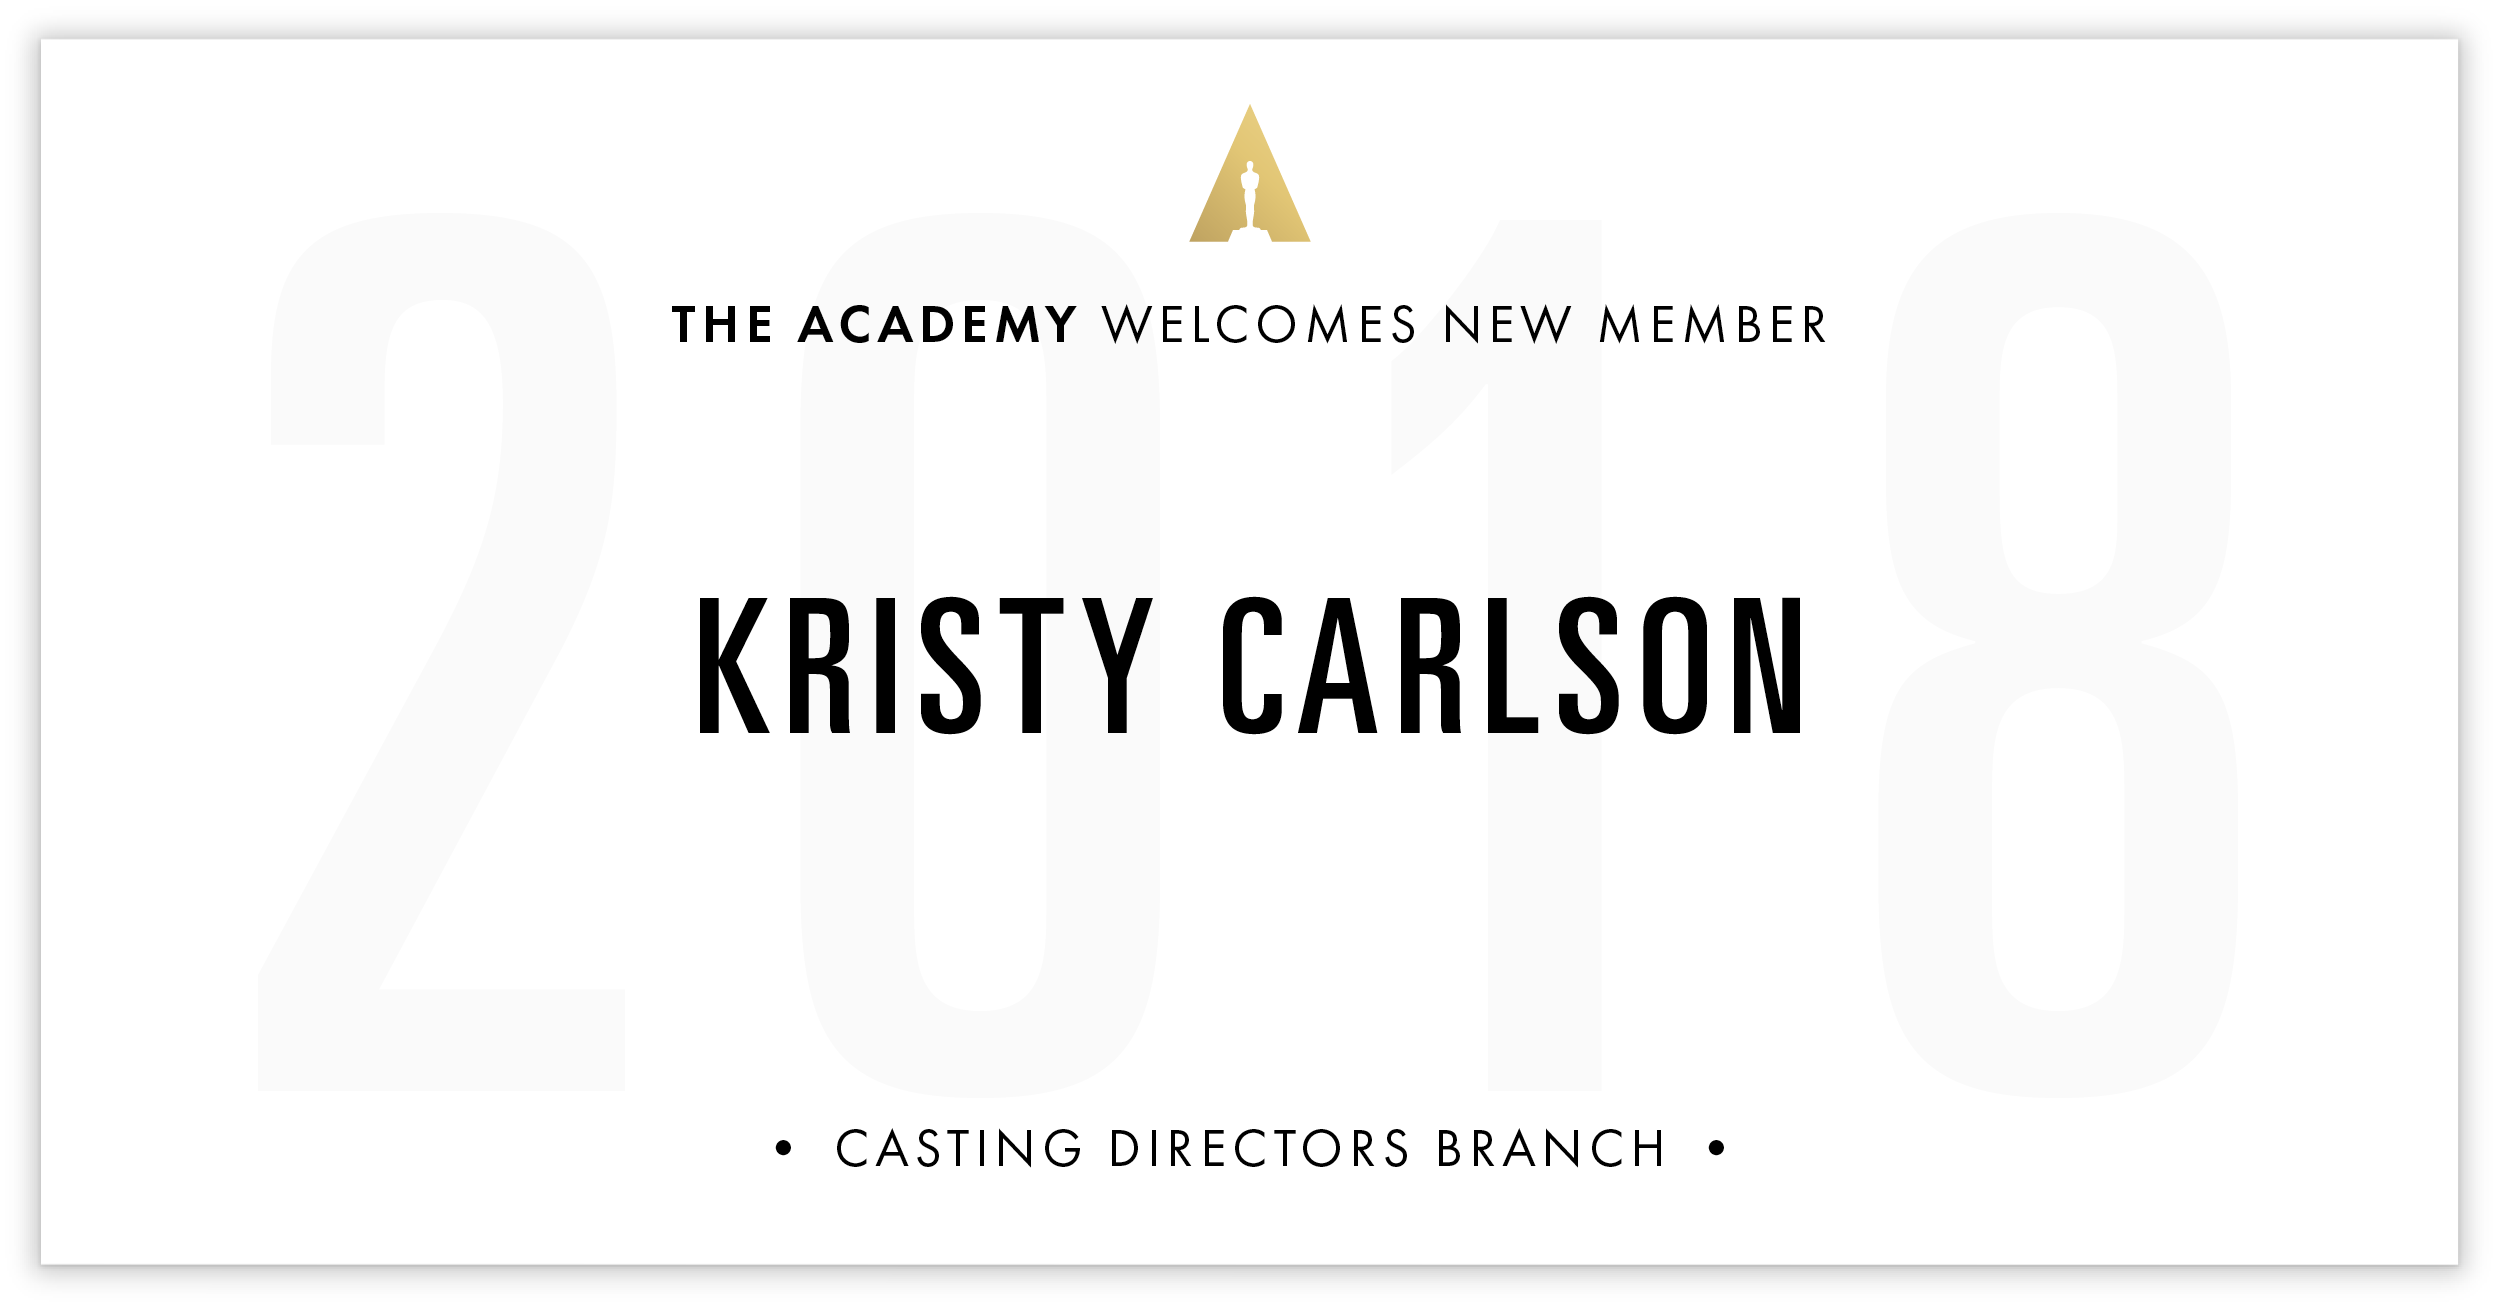 Kristy Carlson is invited!